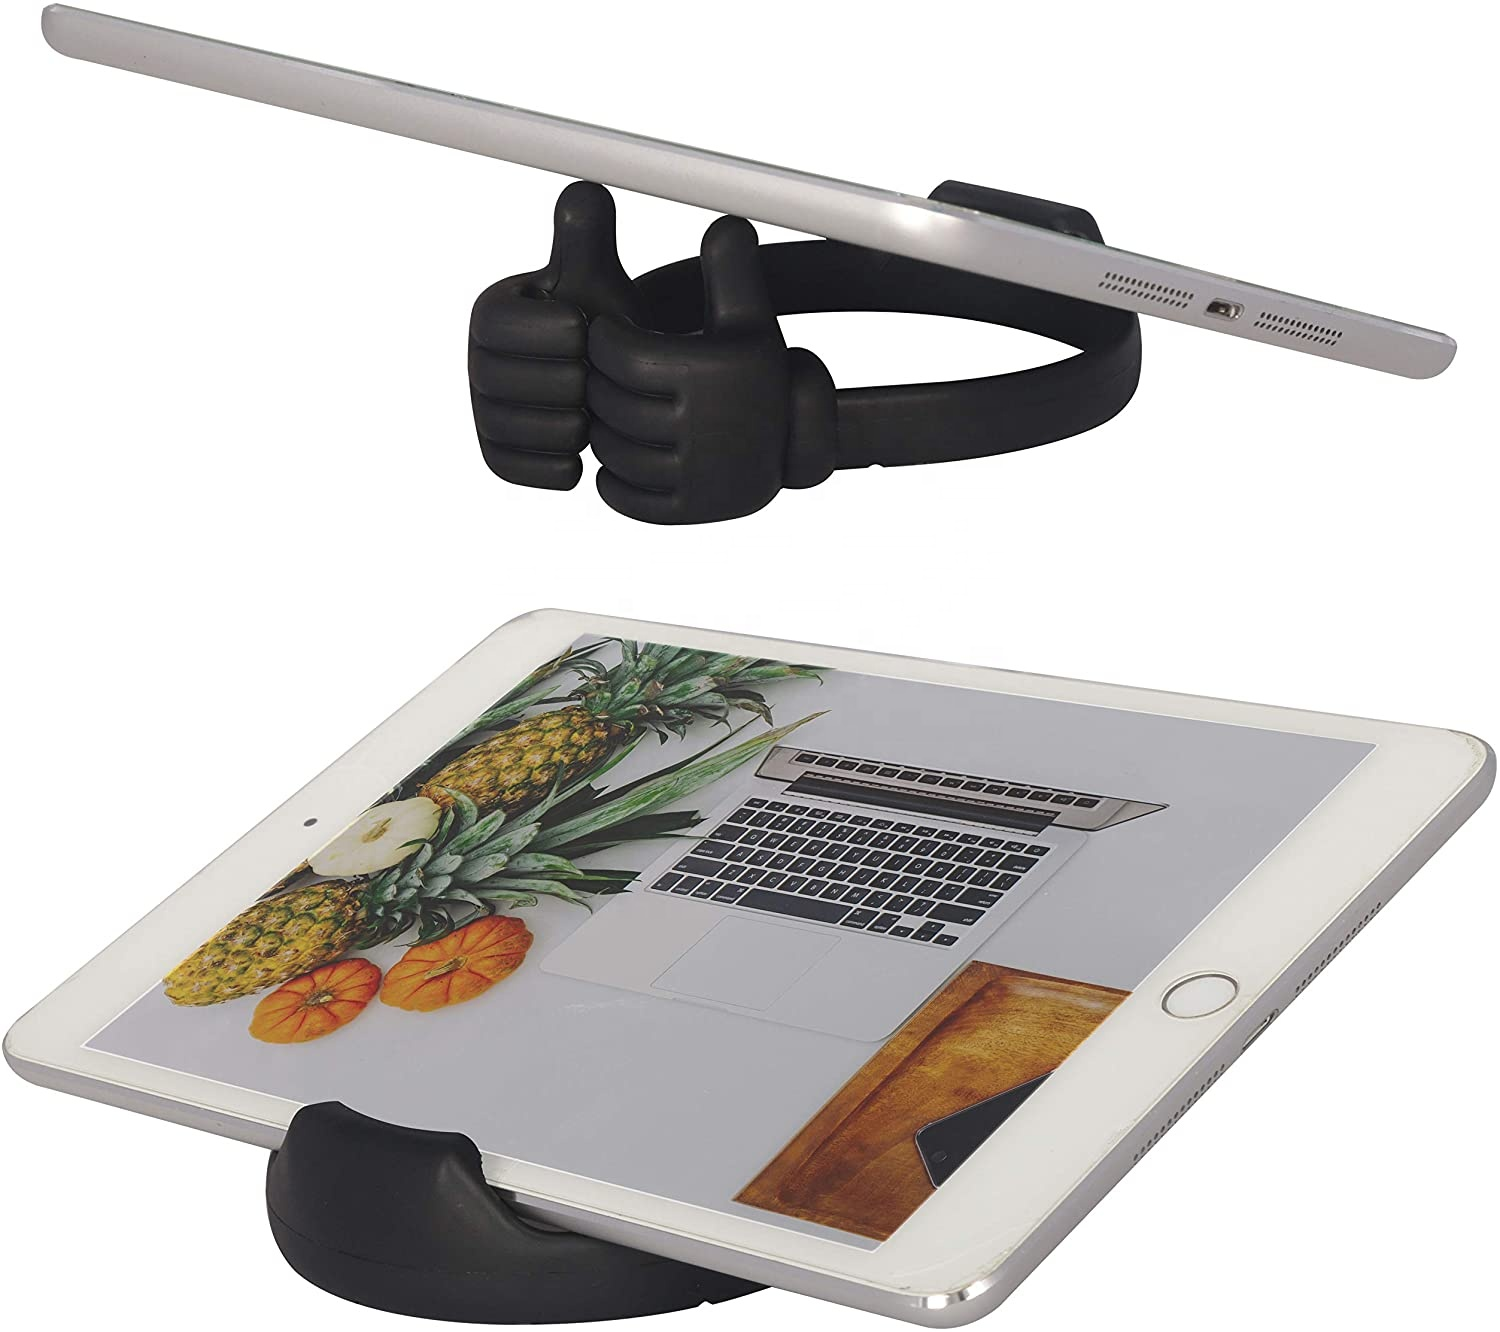 Best seller 2020 <strong>ipad</strong> <strong>stand</strong> <strong>holder</strong> thumb adjustable mobile <strong>stand</strong>